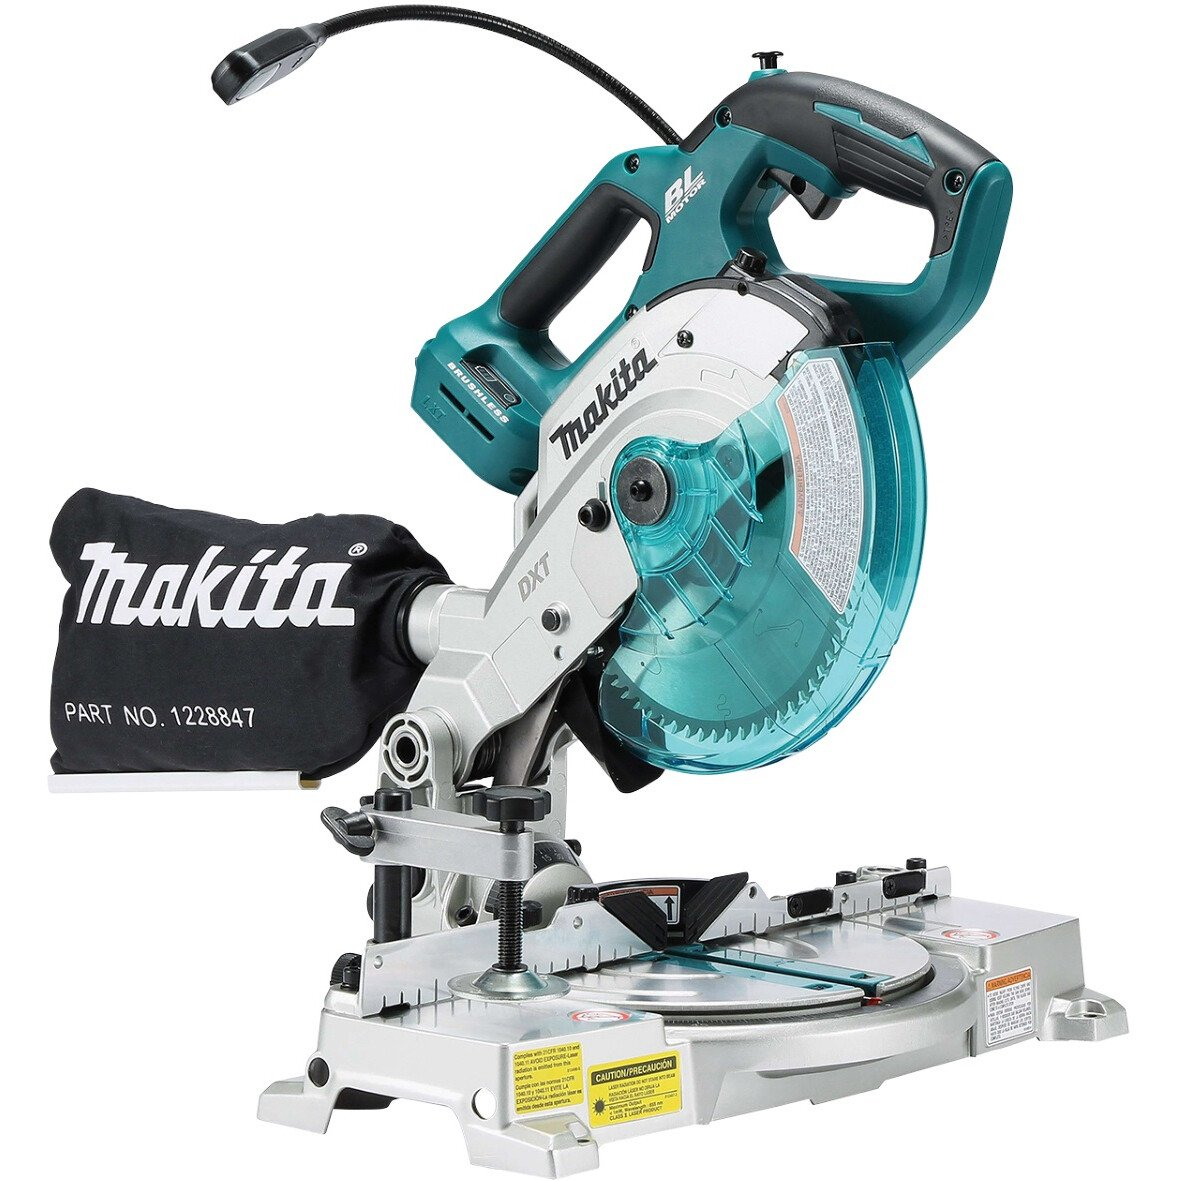 Makita DLS600Z Body Only 18v Brushless Mitre Saw 165mm